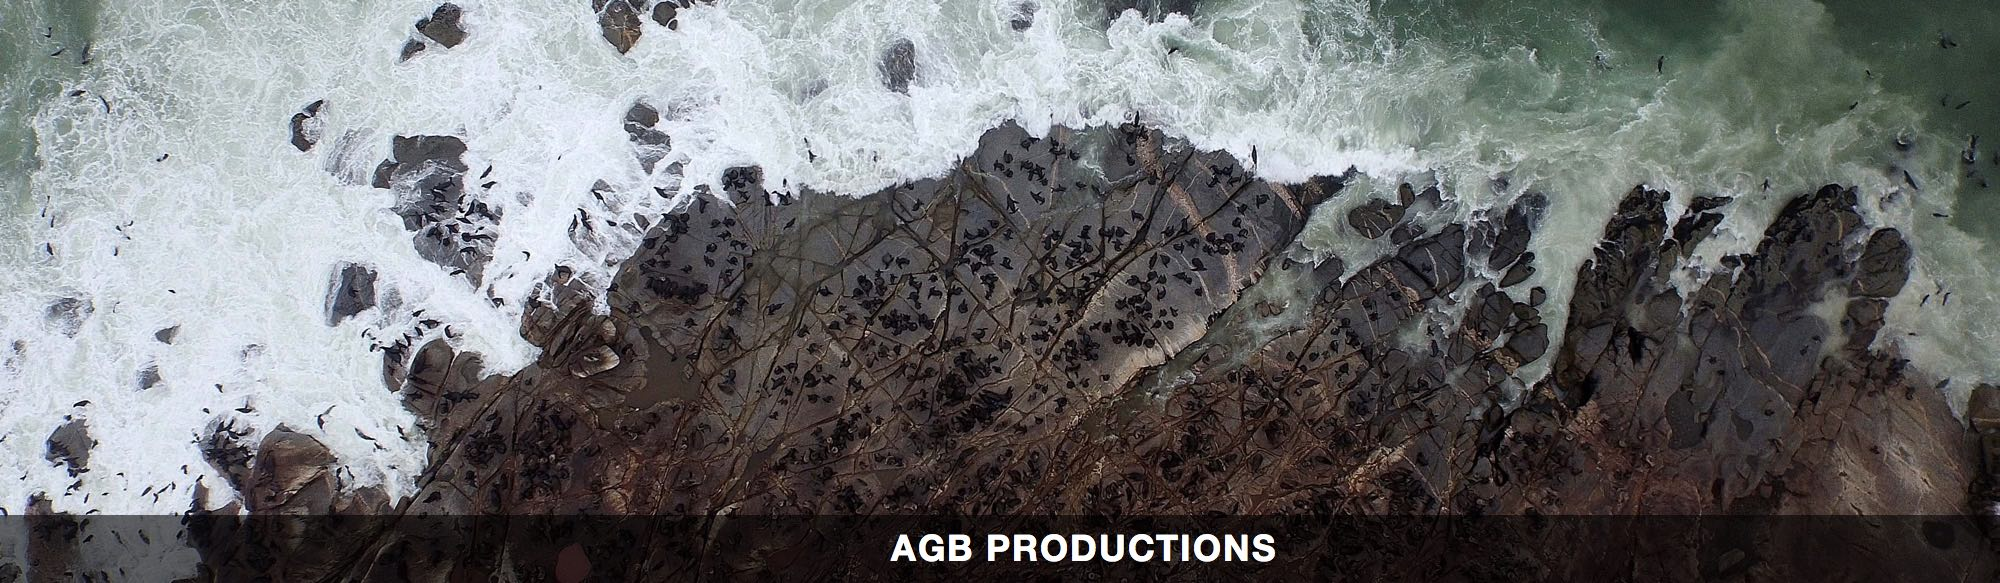 AGBProductions